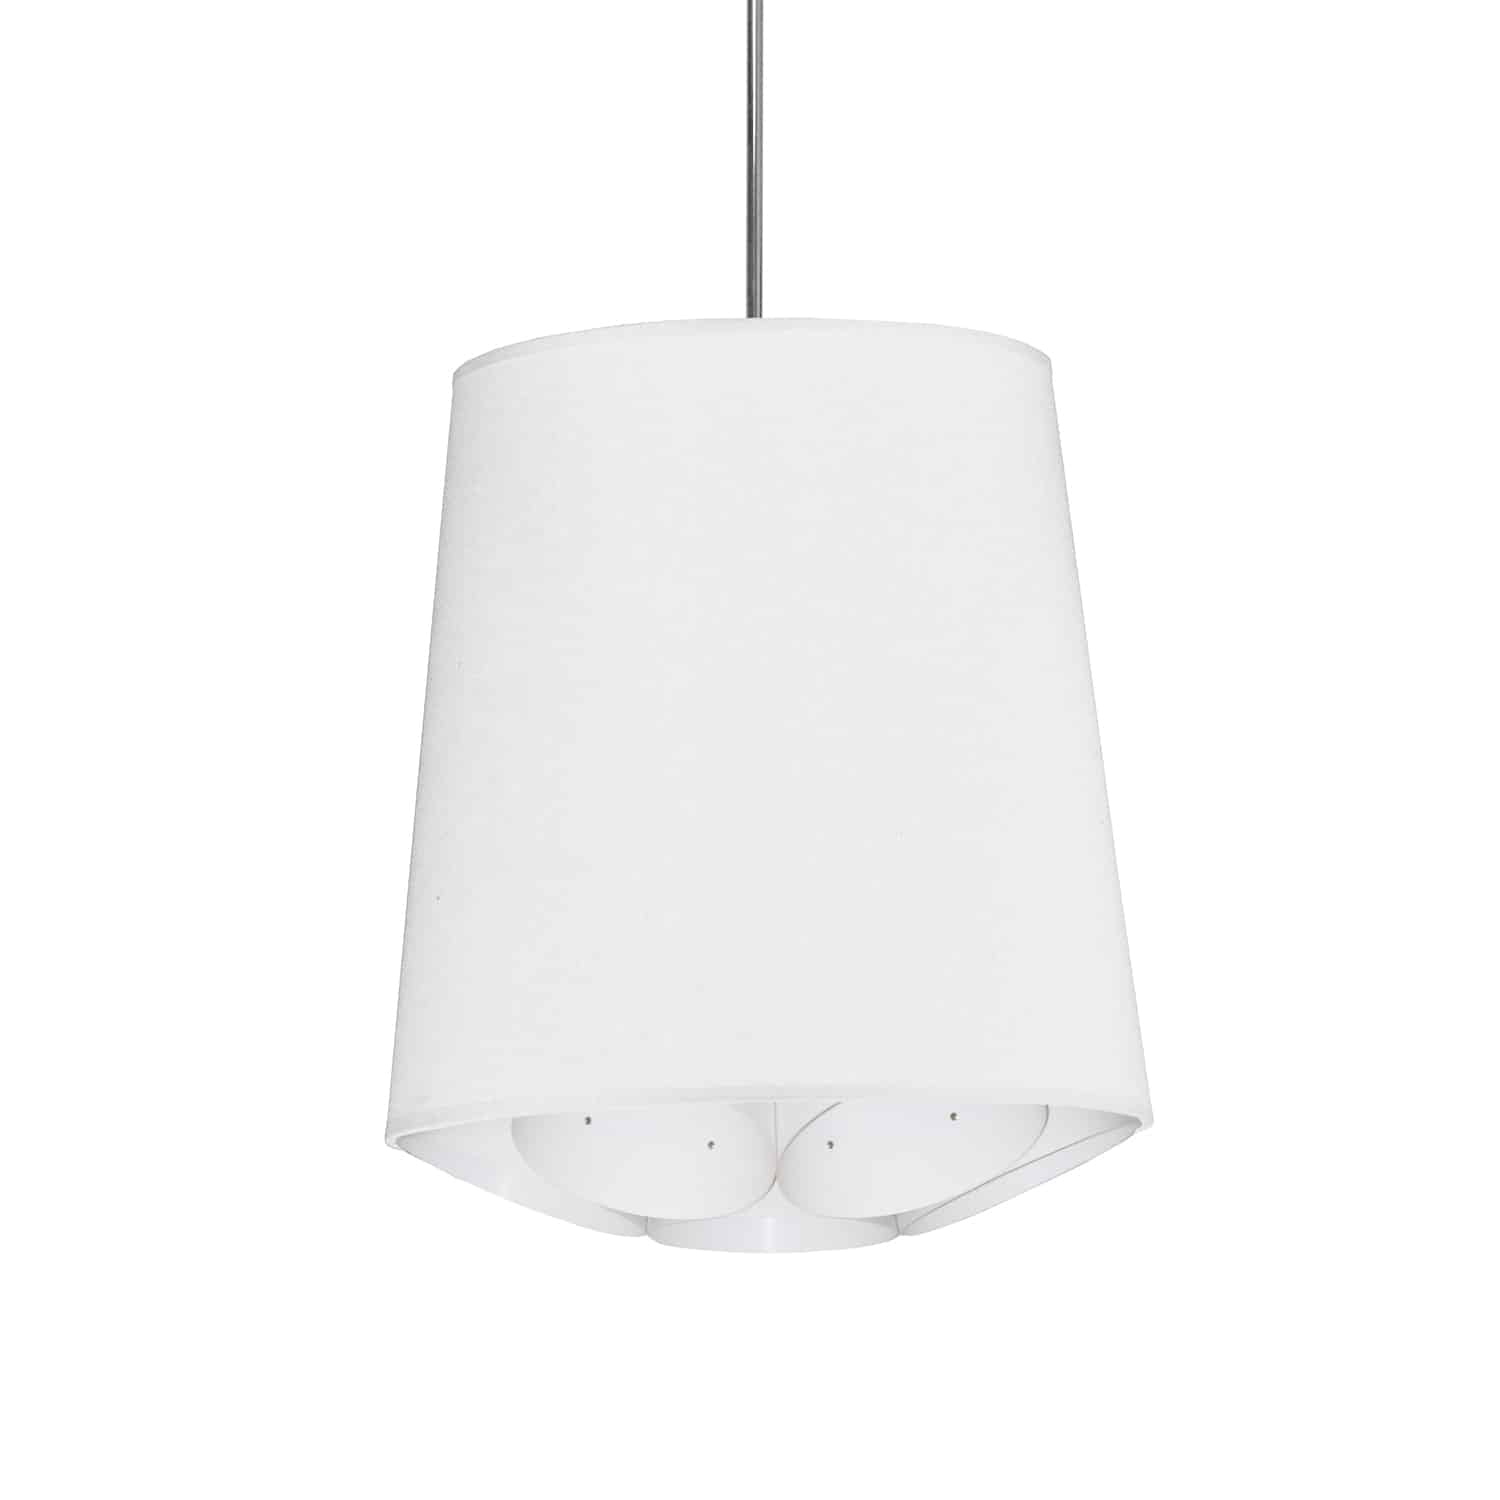 1 Light Hadleigh Pendant JTone White Small Polished Chrome